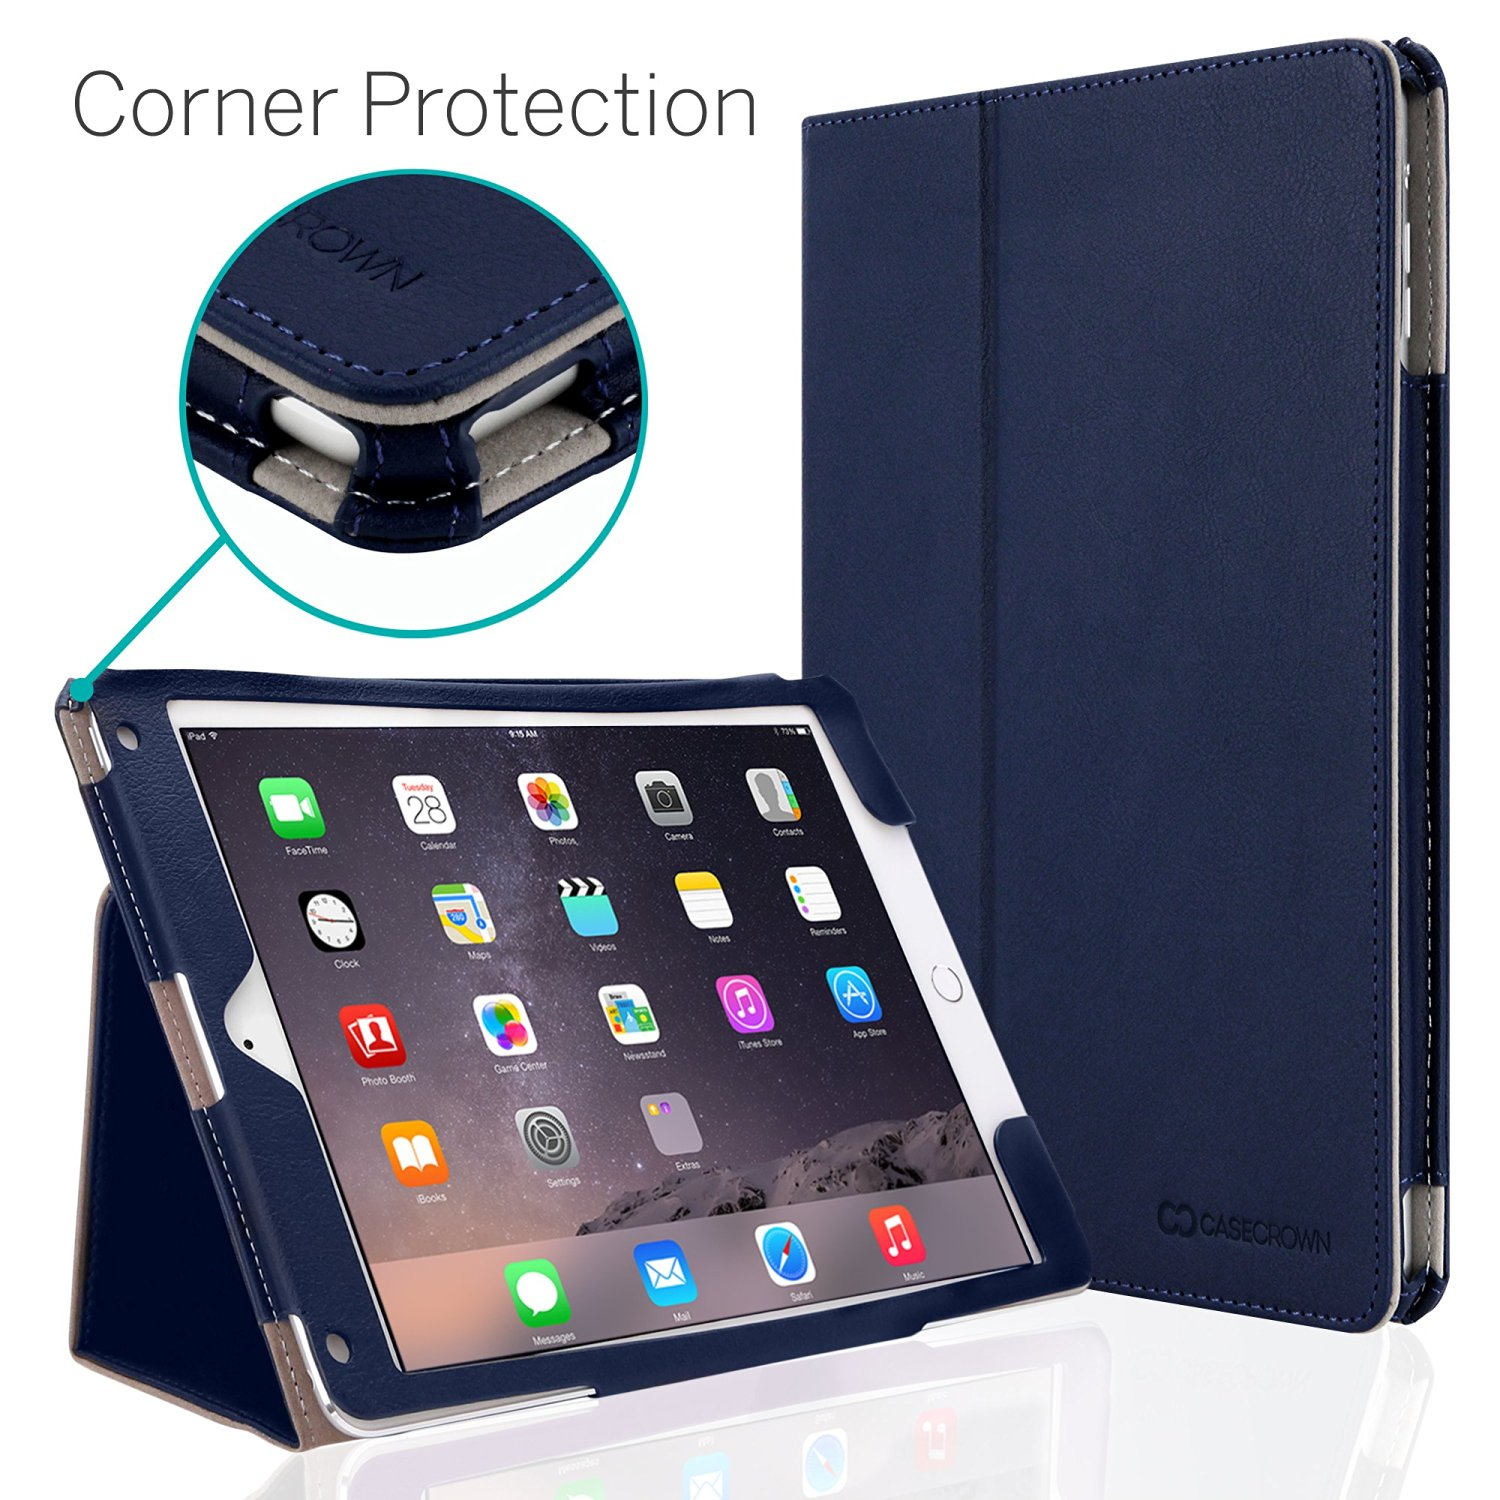 CaseCrown Bold Standby Pro Case (Blue) for Apple iPad Air 2 with Hand Grip, Corner Protection, & Multi-Angle Viewing Stand (Built-in magnetic for sleep / wake feature)